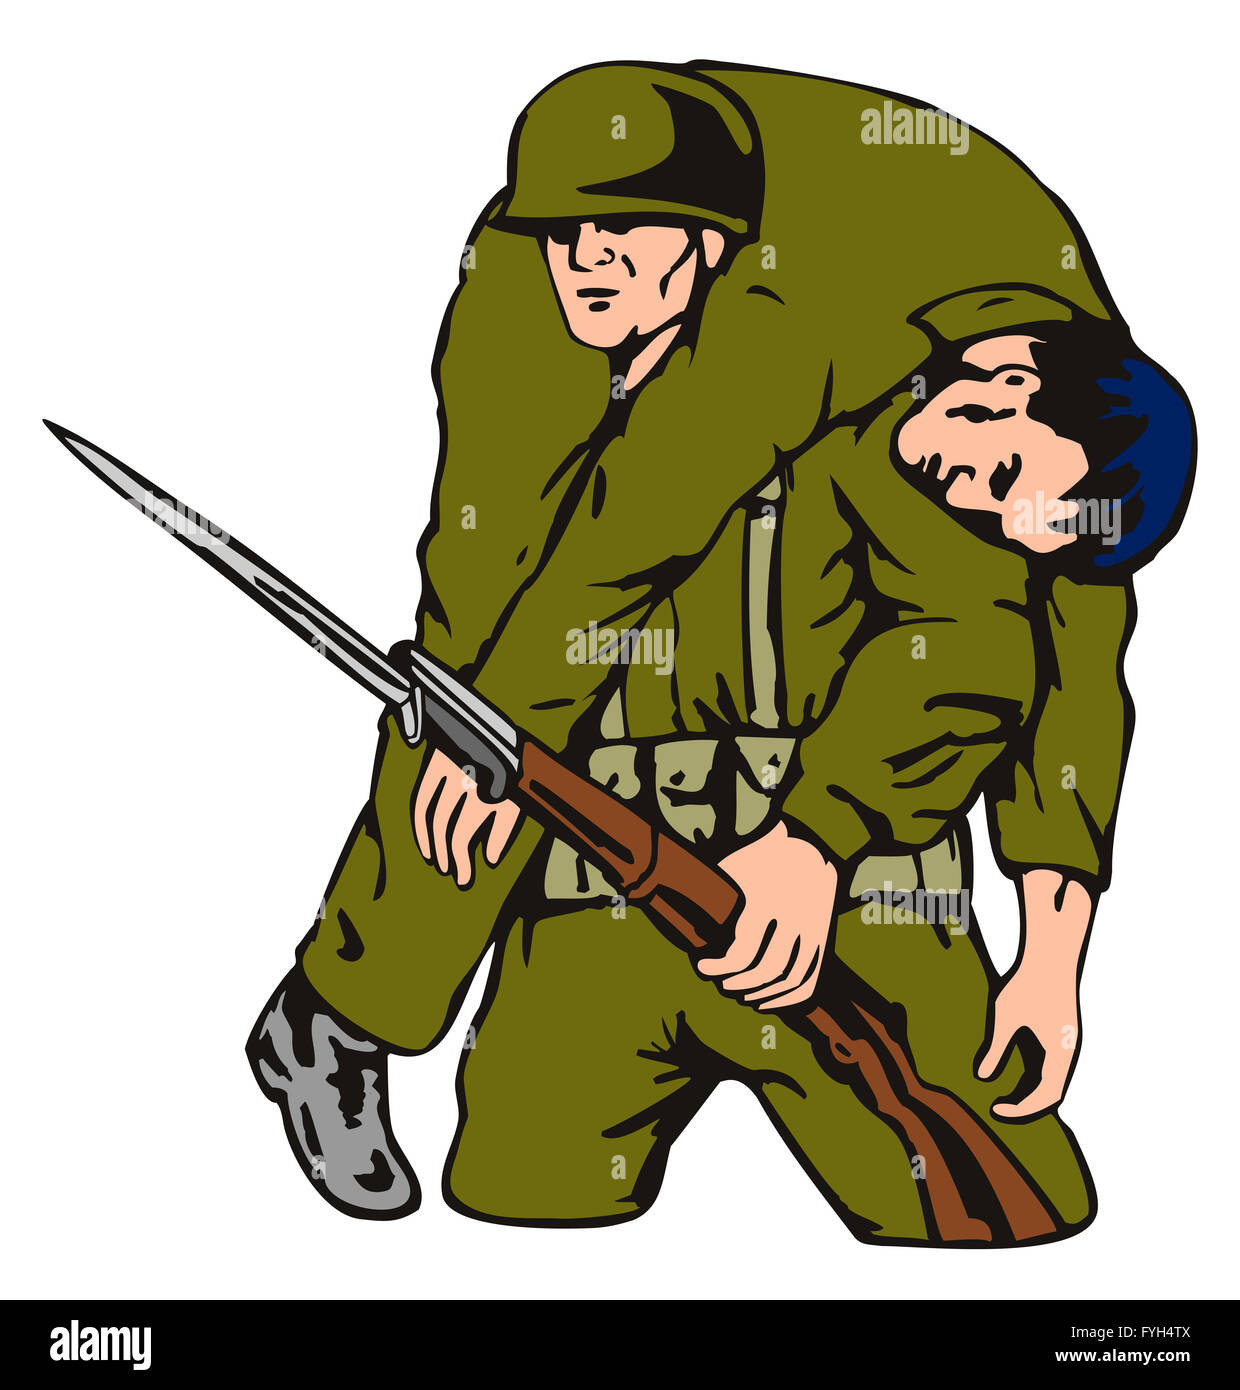 Soldier Carrying Wounded Comrade Stock Photos & Soldier